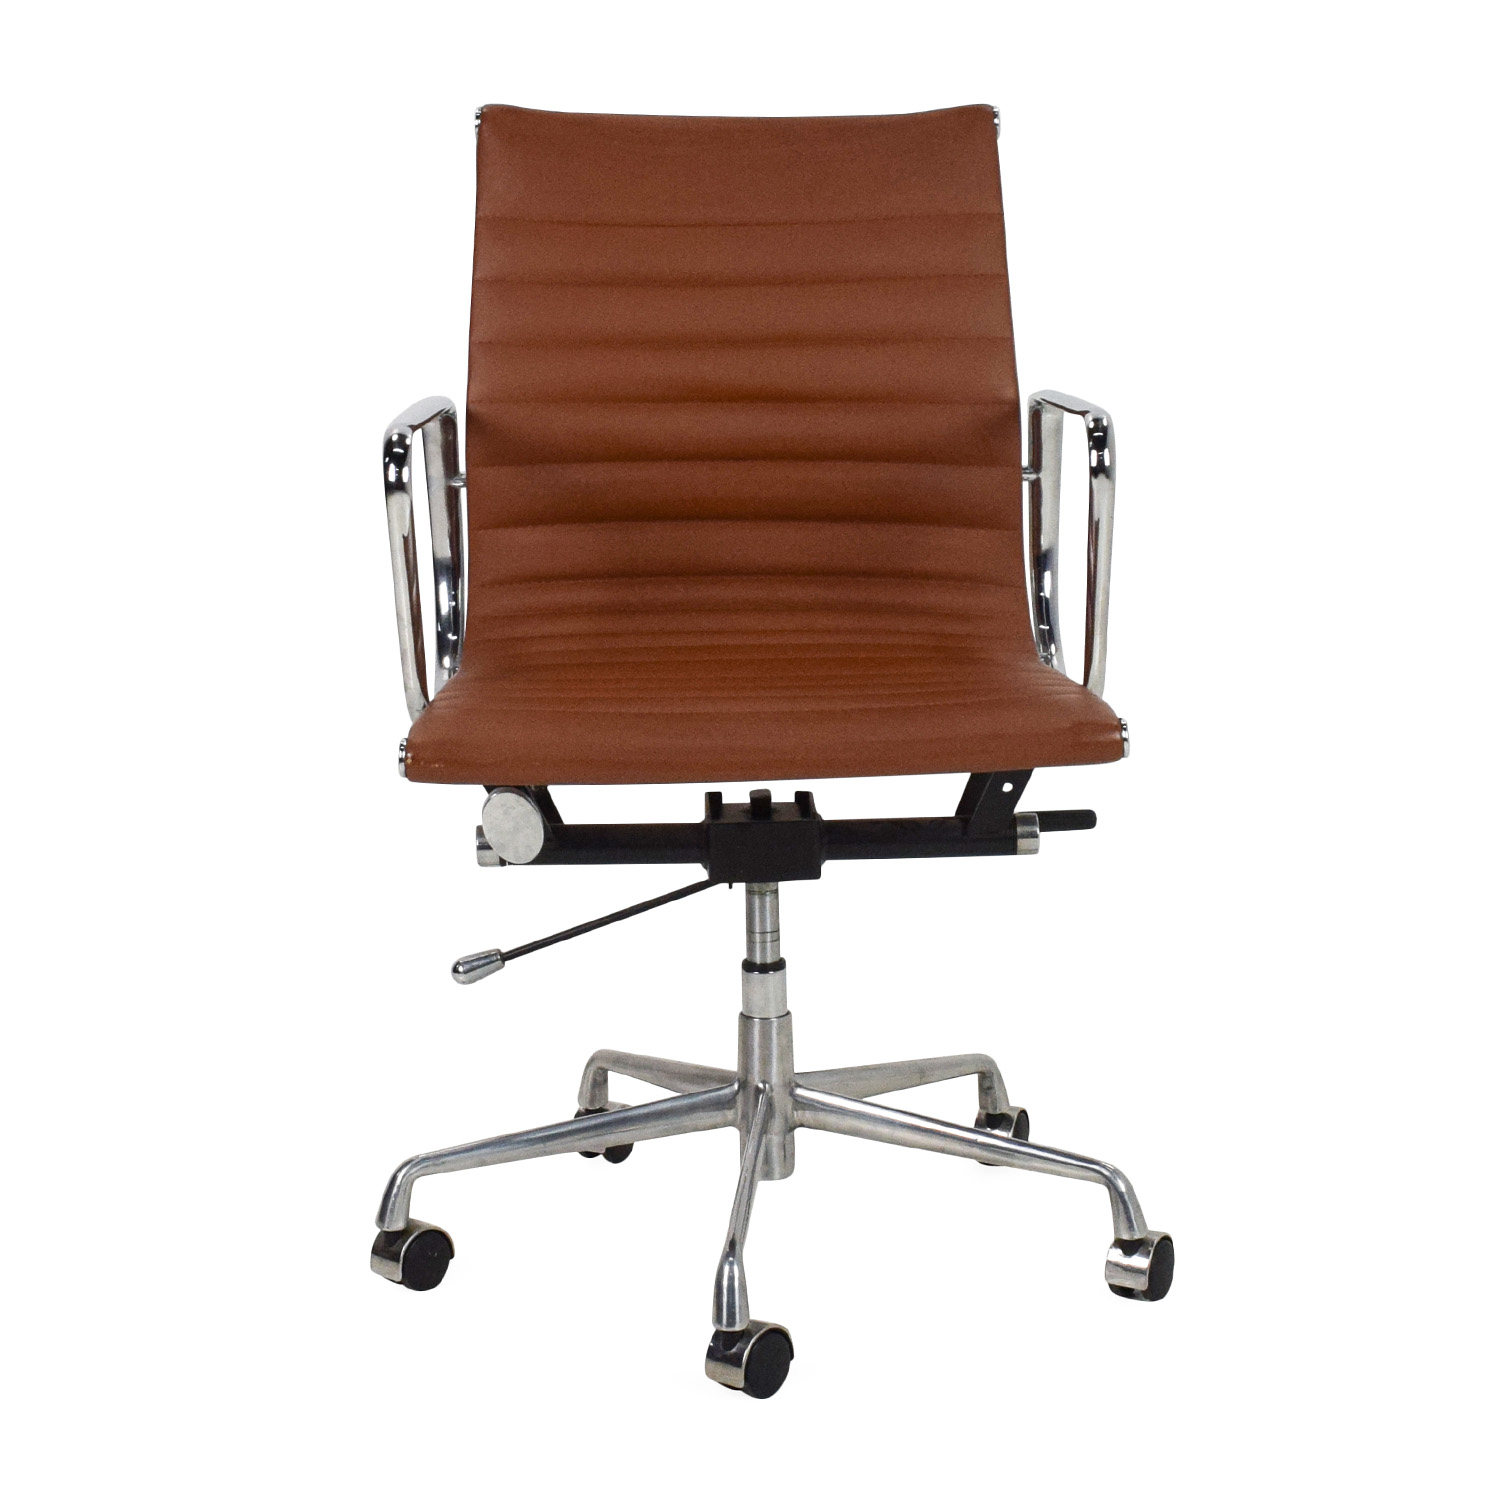 Chrome Office Chair / Home Office Chairs